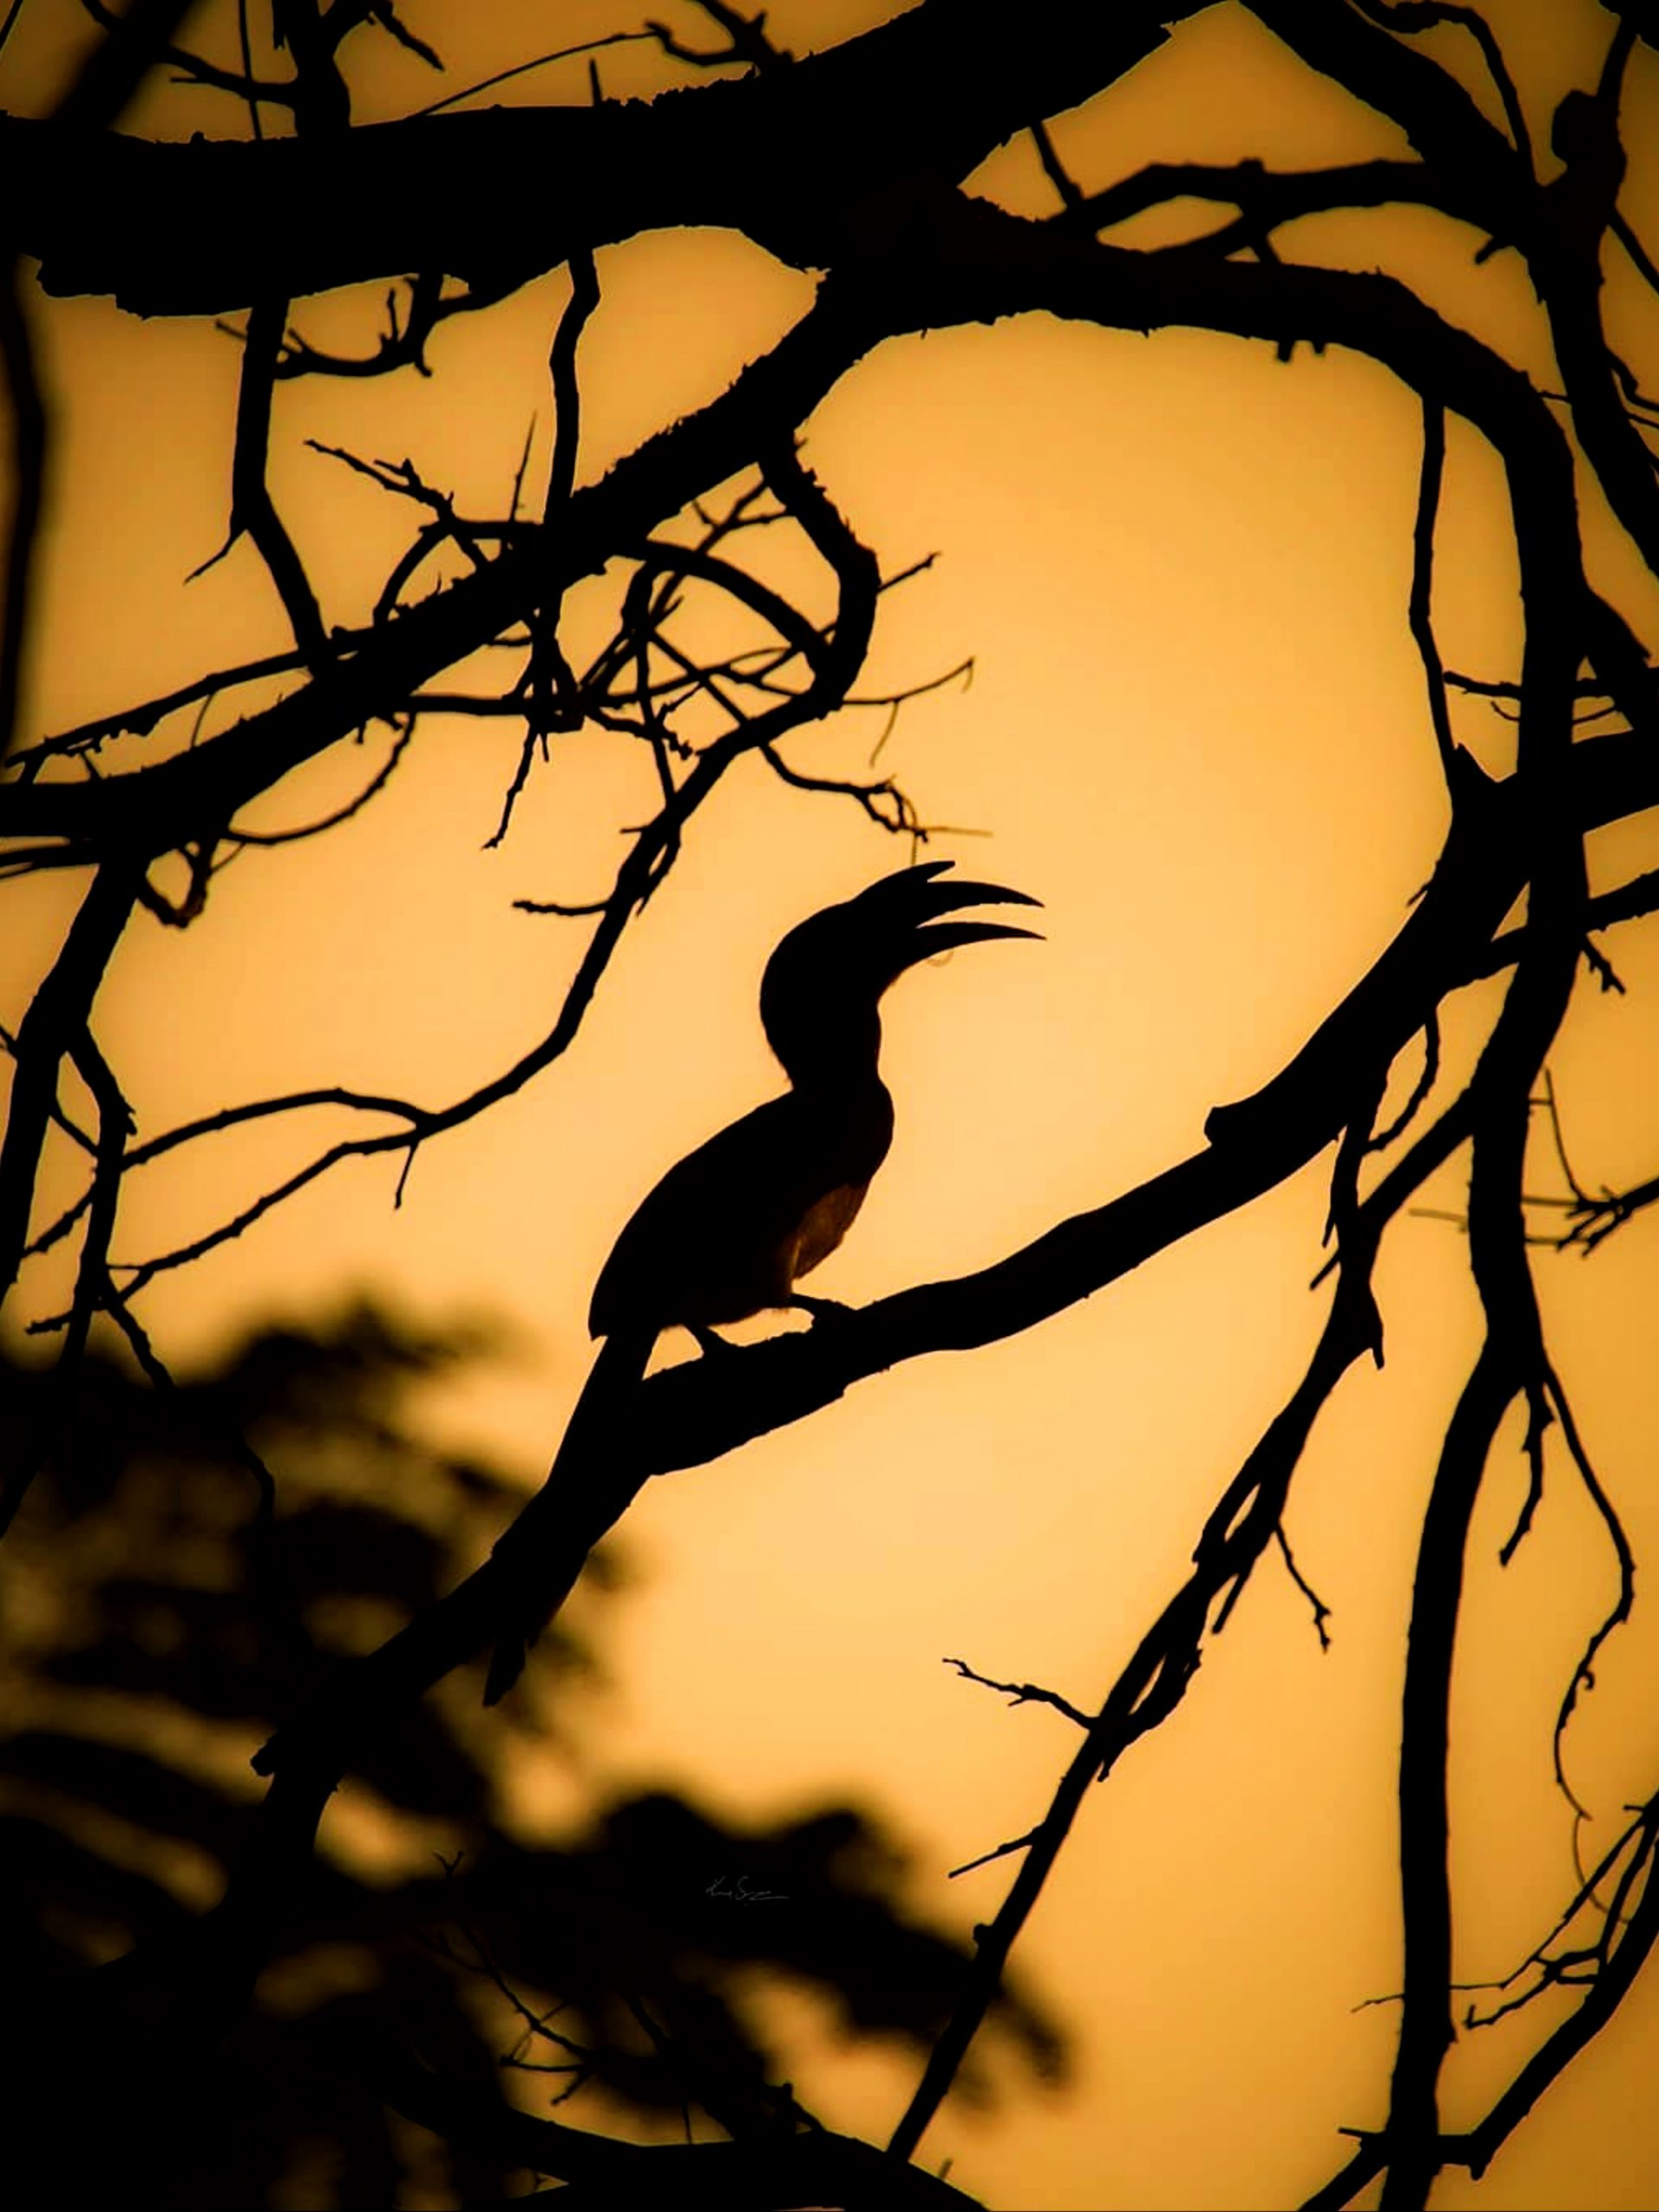 silhouette of bird on a branch